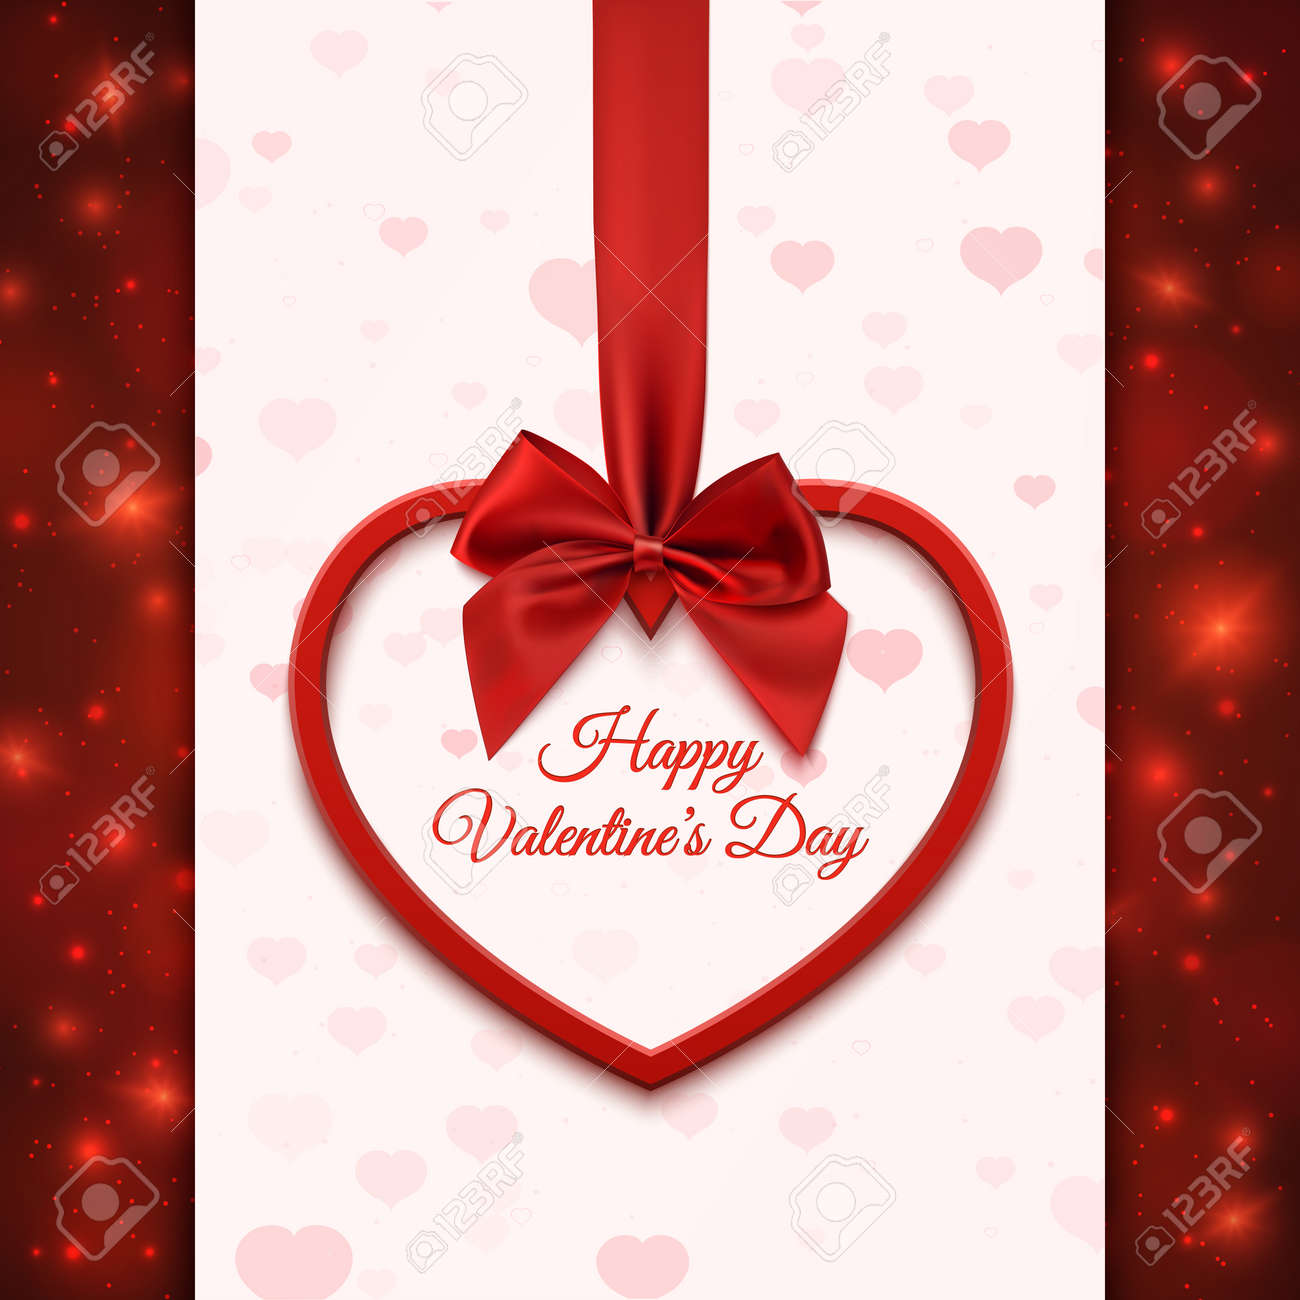 Happy Valentines Day Greeting Card Template Red Heart With Red – Happy Valentines Day Greeting Cards